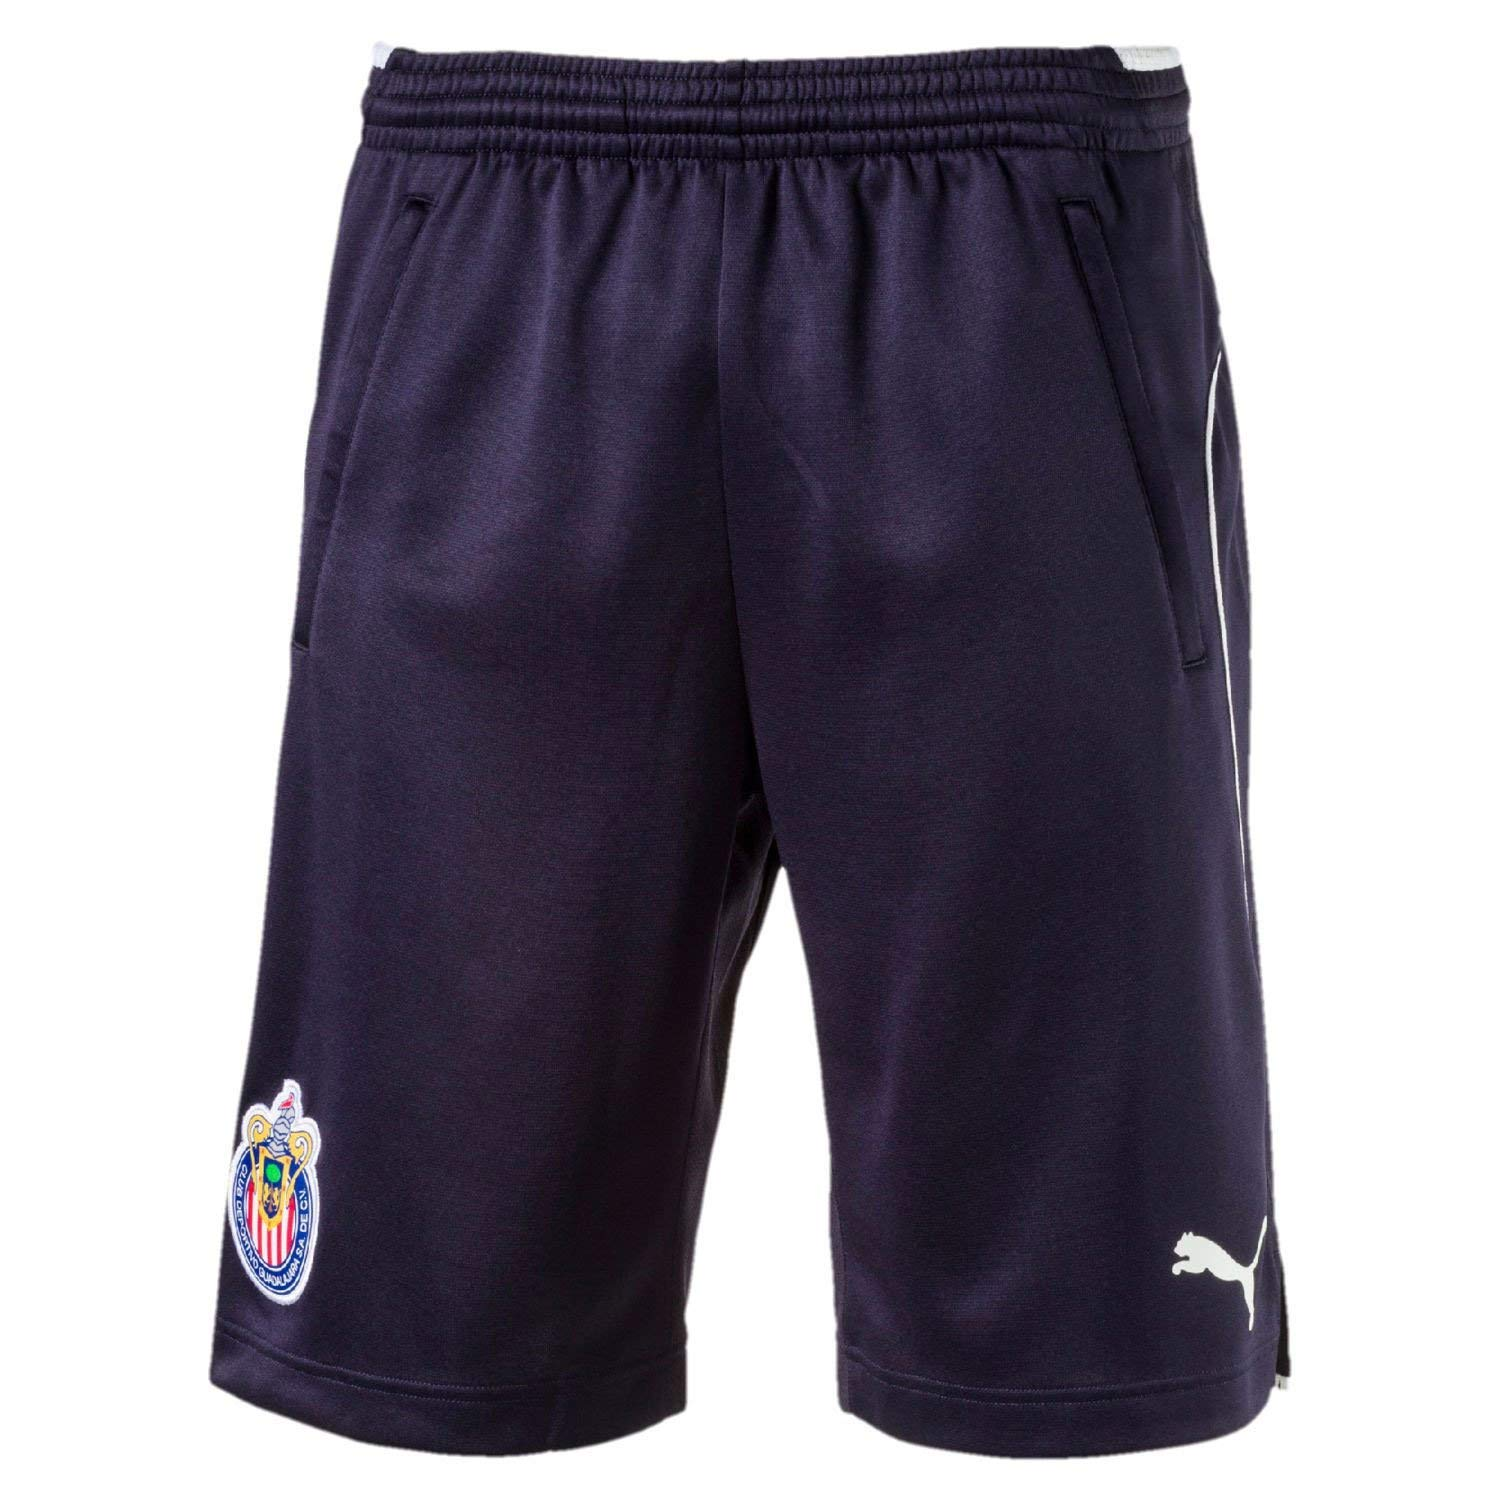 PUMA Mens Chivas Training Shorts